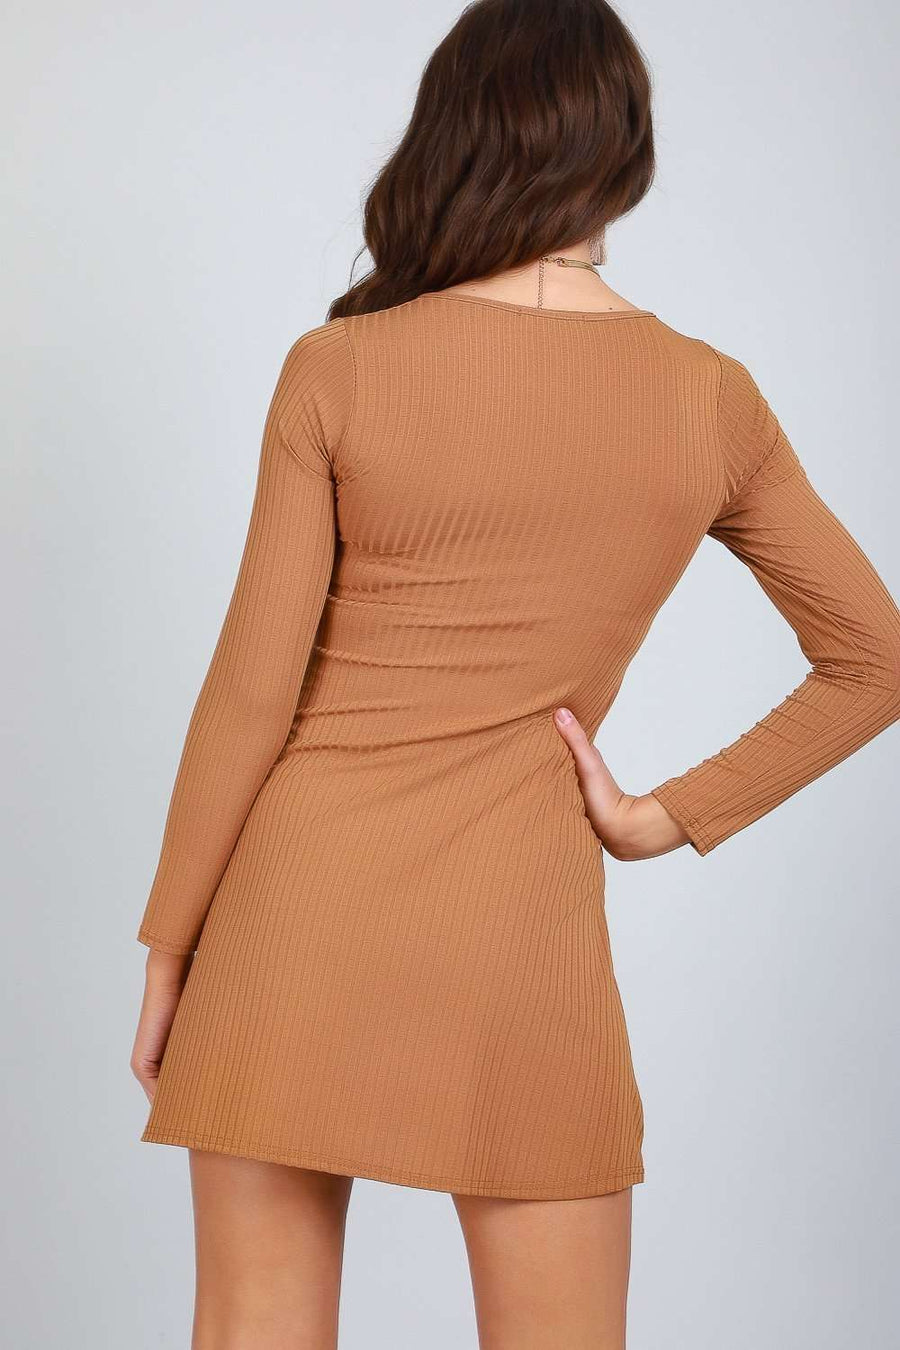 Eli Long Sleeve Button Through Swing Dress - bejealous-com